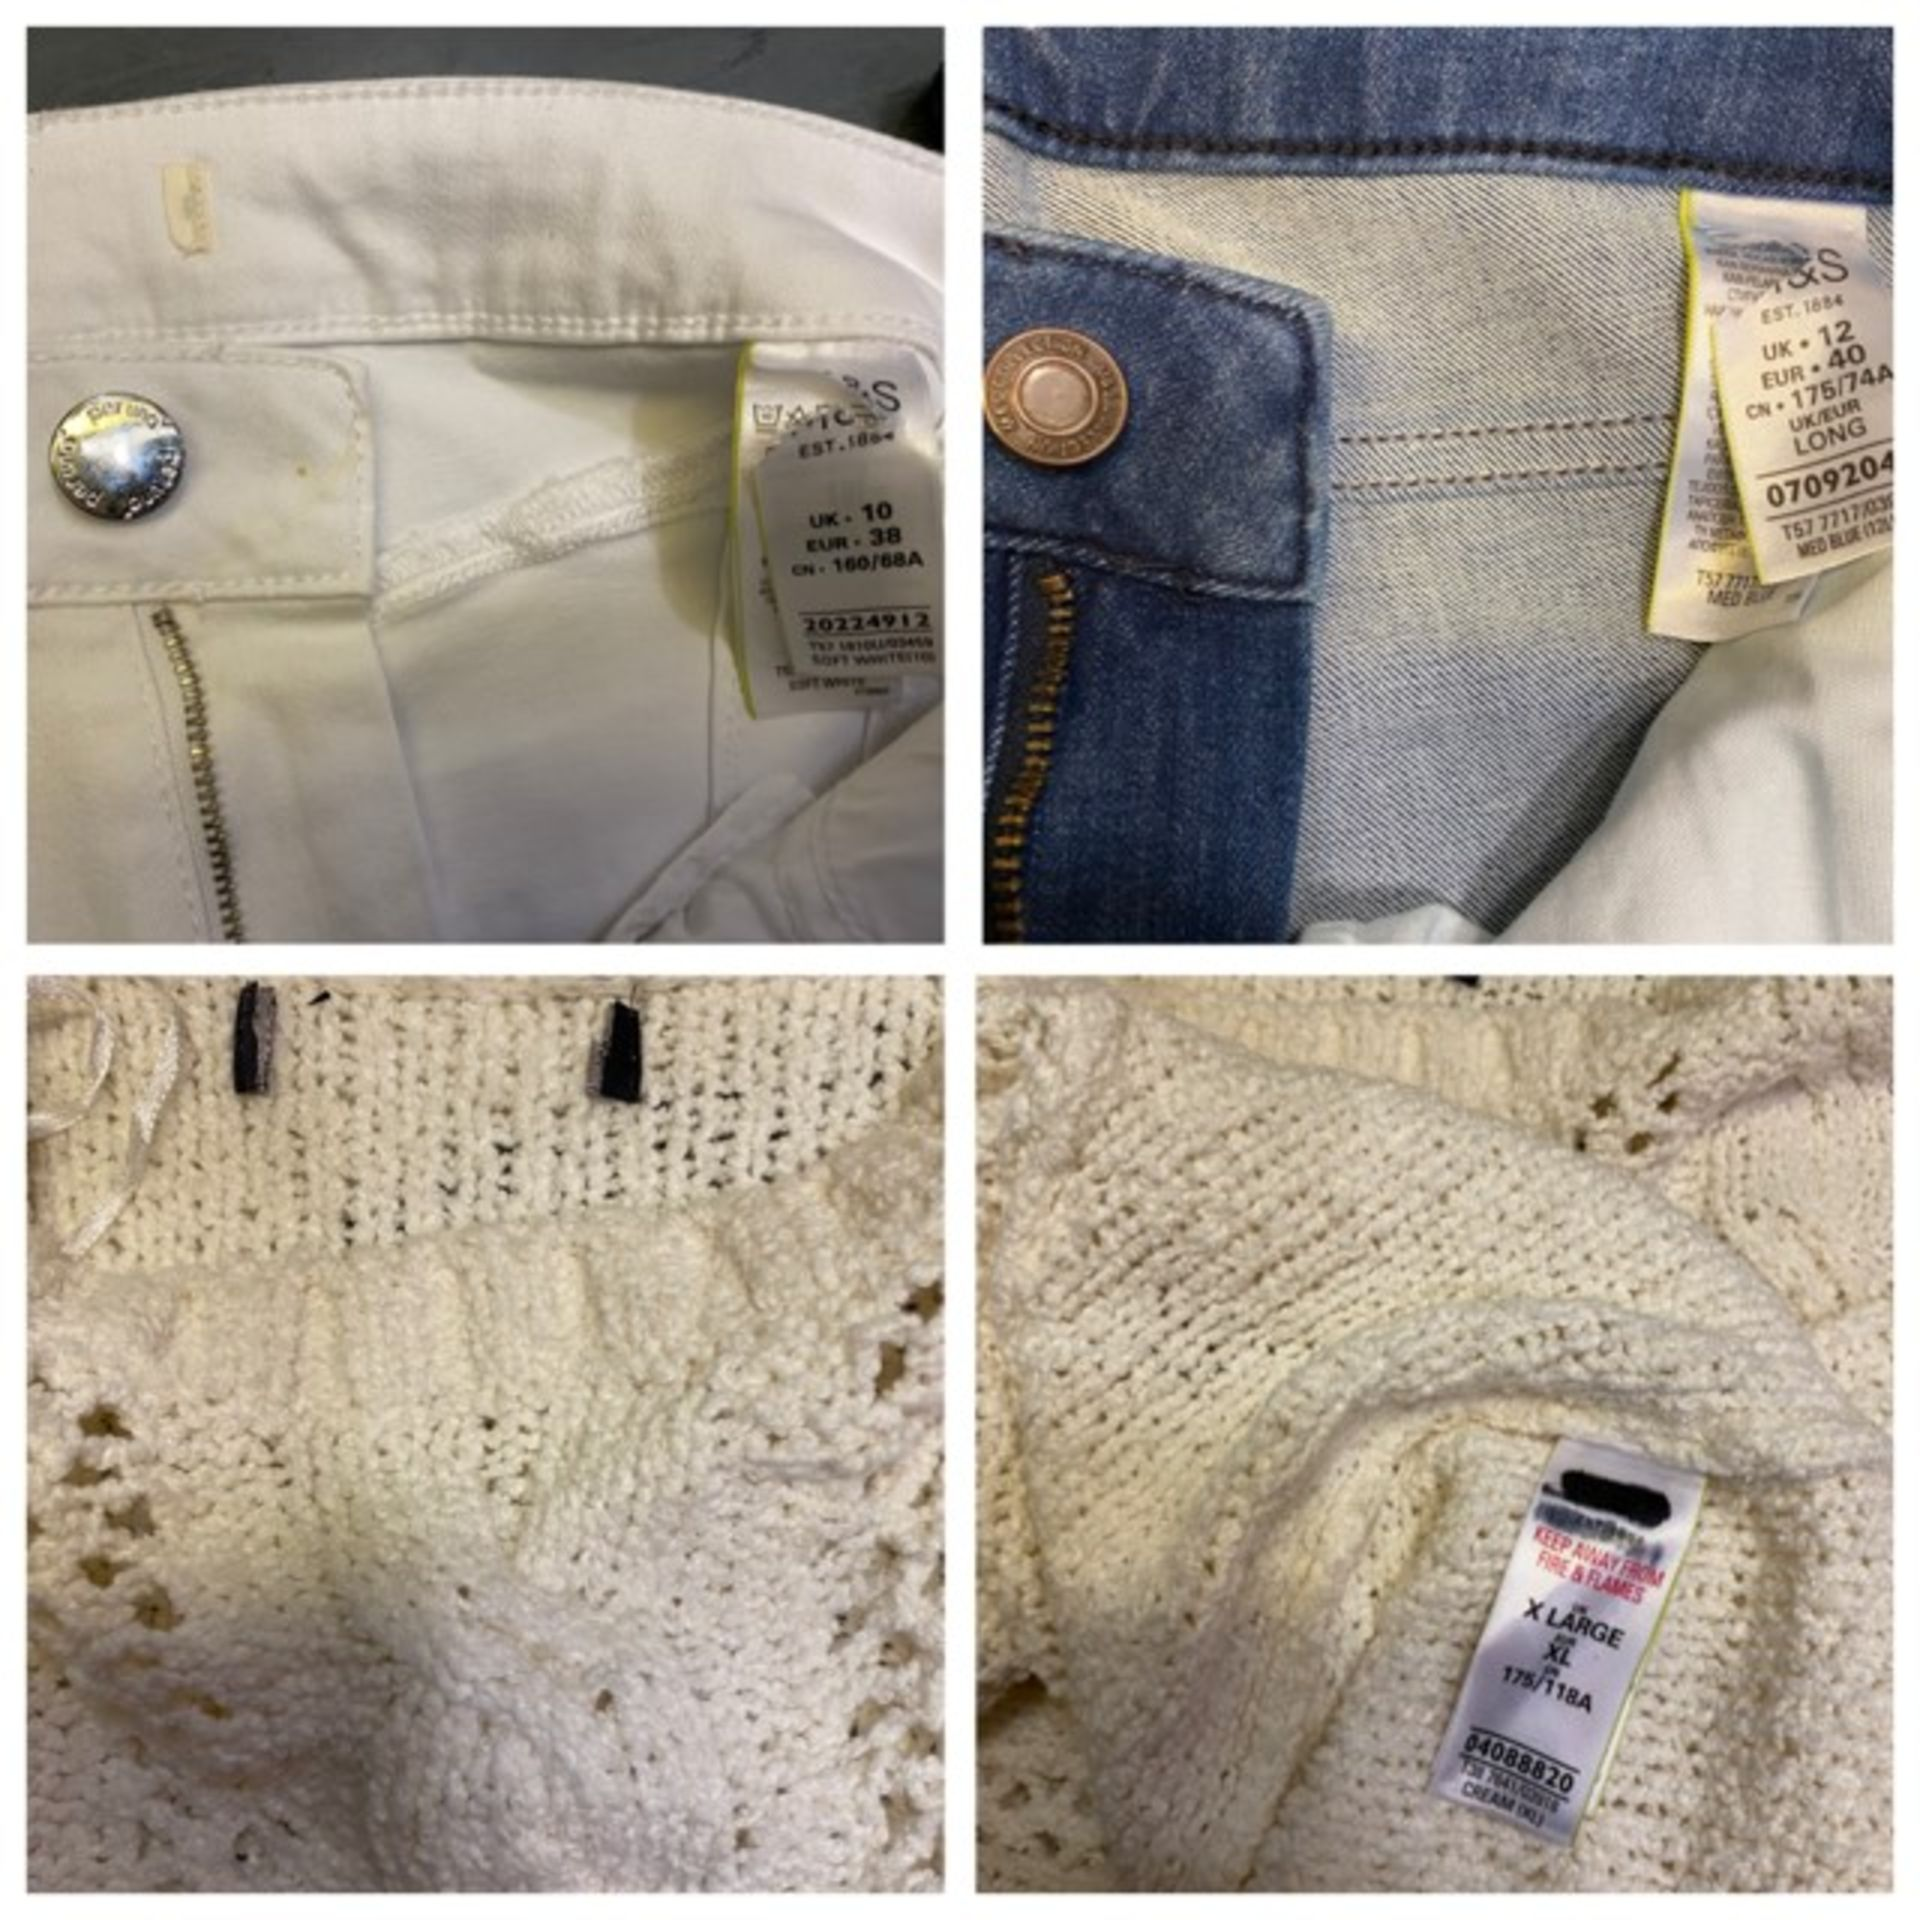 1 x mixed pallet = 264 items of Grade A M&S Menswear Clothing. Total RRP £7775.50 - Image 8 of 8